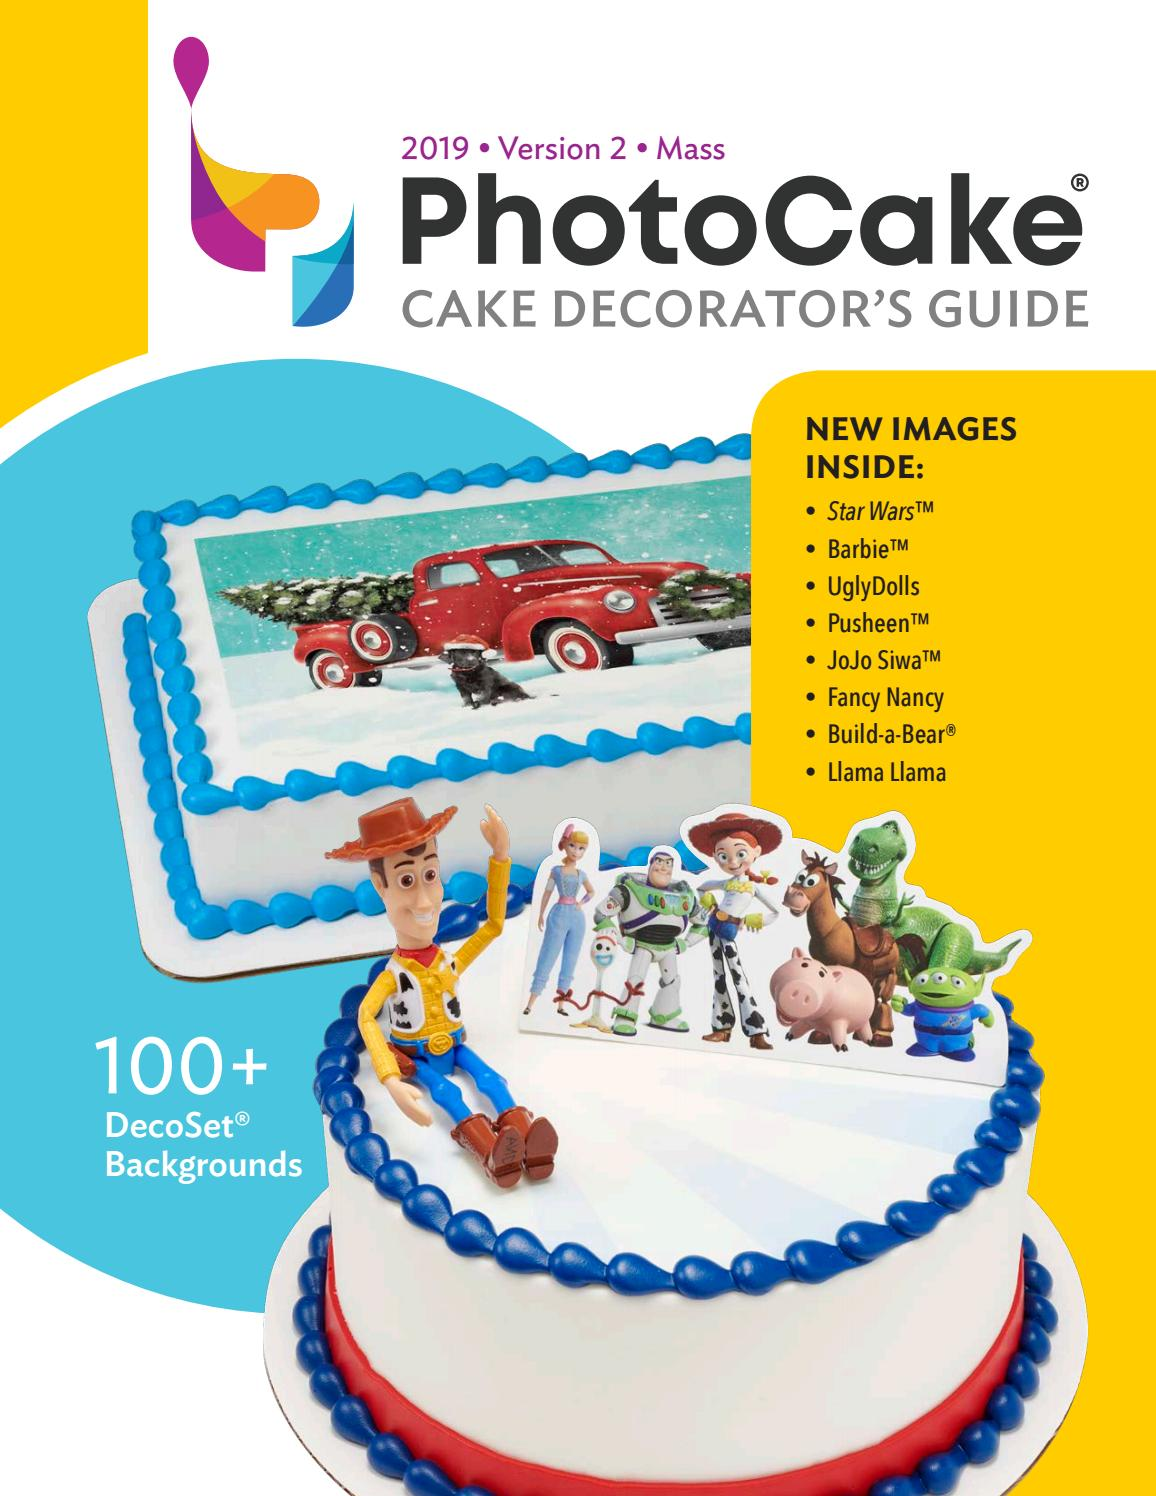 Photocake Update 39 Decorators Guide By Decopac Issuu